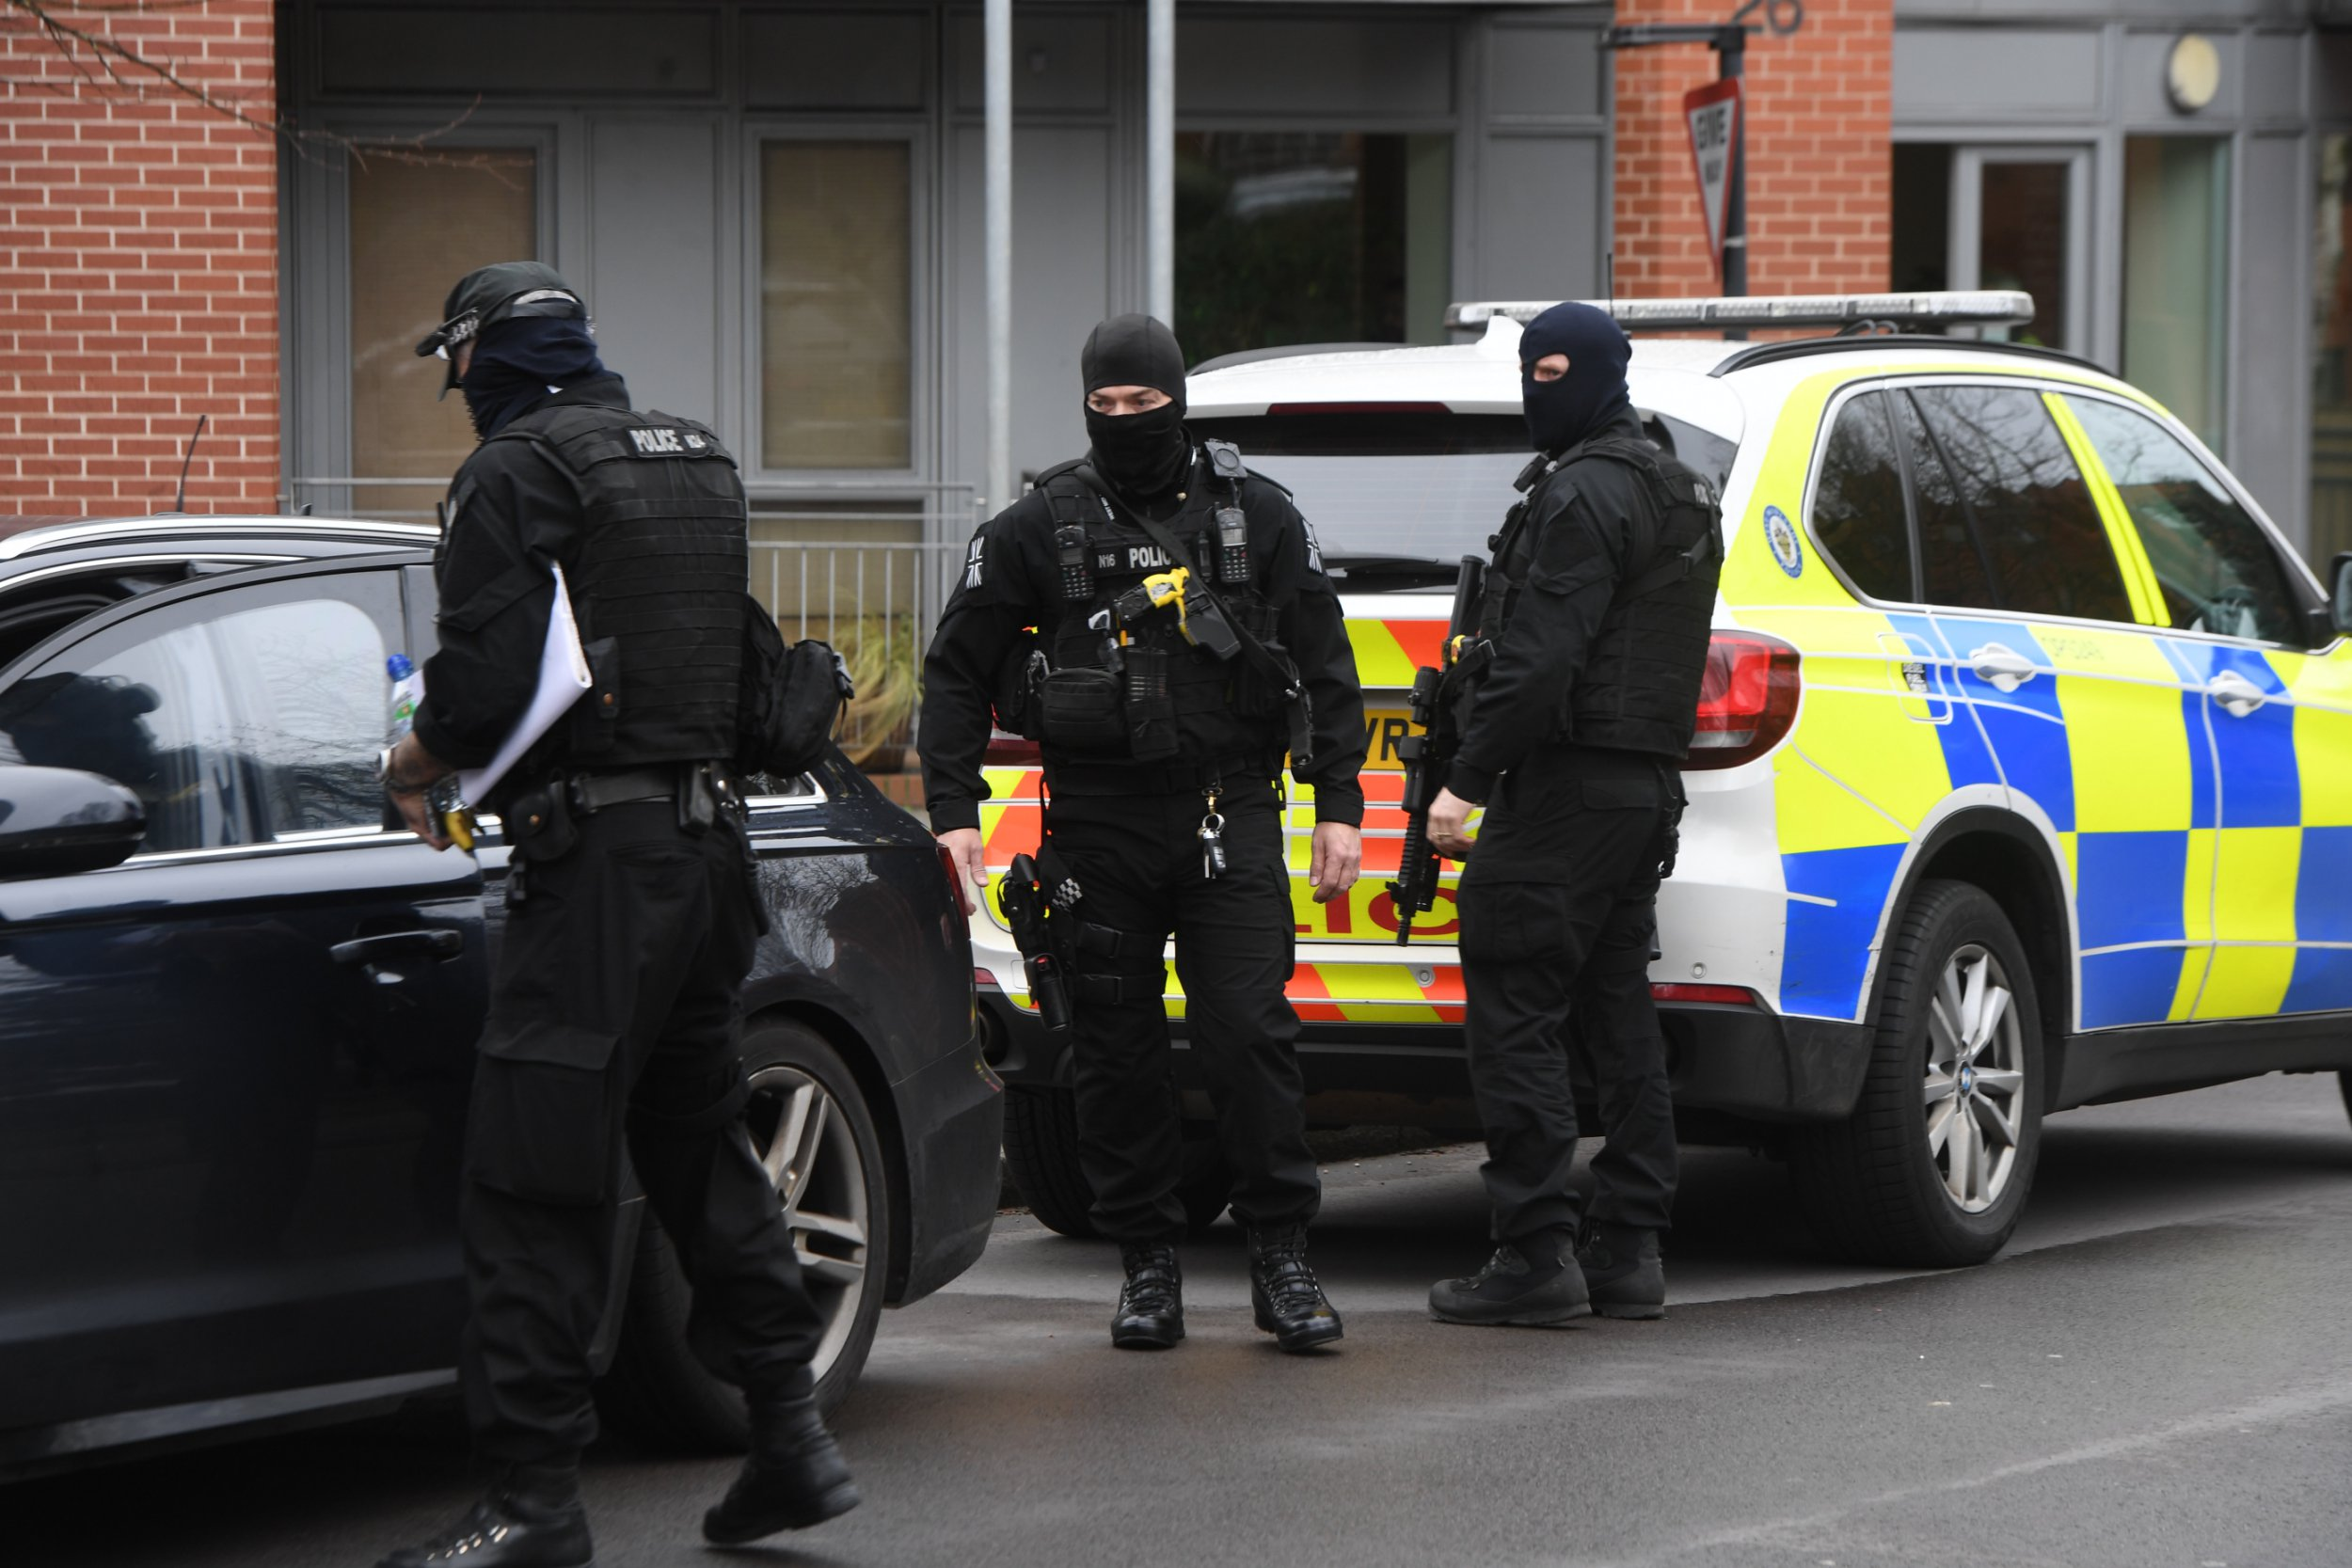 ARMED police have shot dead a man during an operation in the city centre. West Midlands Police said a warrant was executed as part of an intelligence-led operation in Wheeleys Lane in Lee Bank just before 5am today (Friday 15 March). A man, in his 50s, was shot and died a short time later at the scene. The area is currently cordoned off. Armed police at the scene of the shooting in Wheeleys Lane and Bath Row.